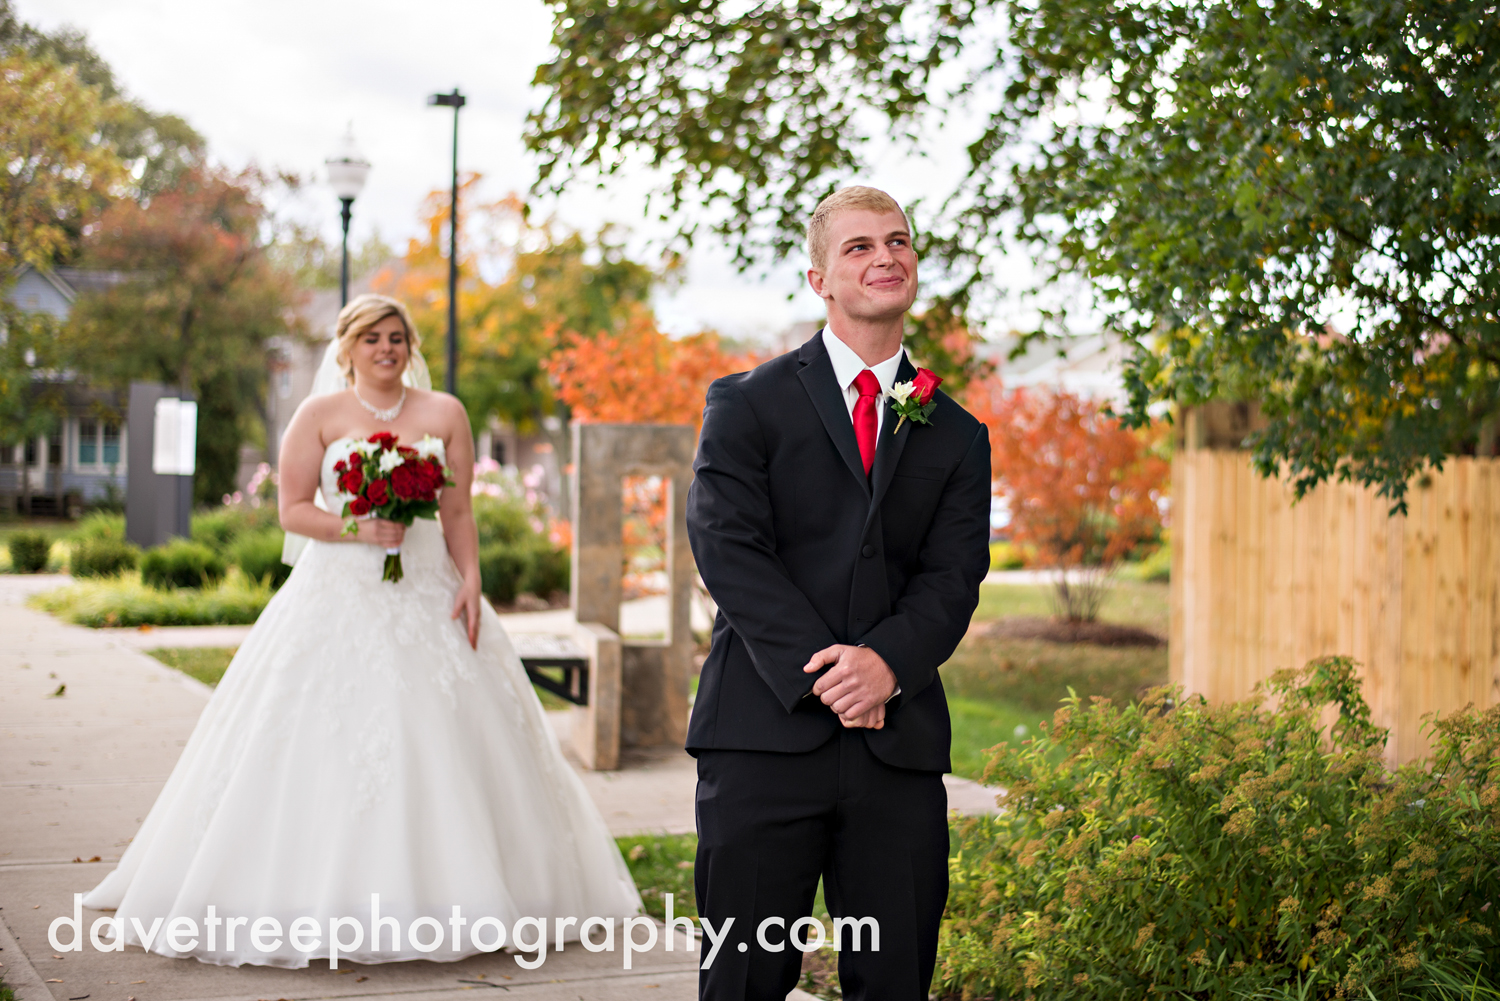 holland_wedding_photographer_82.jpg